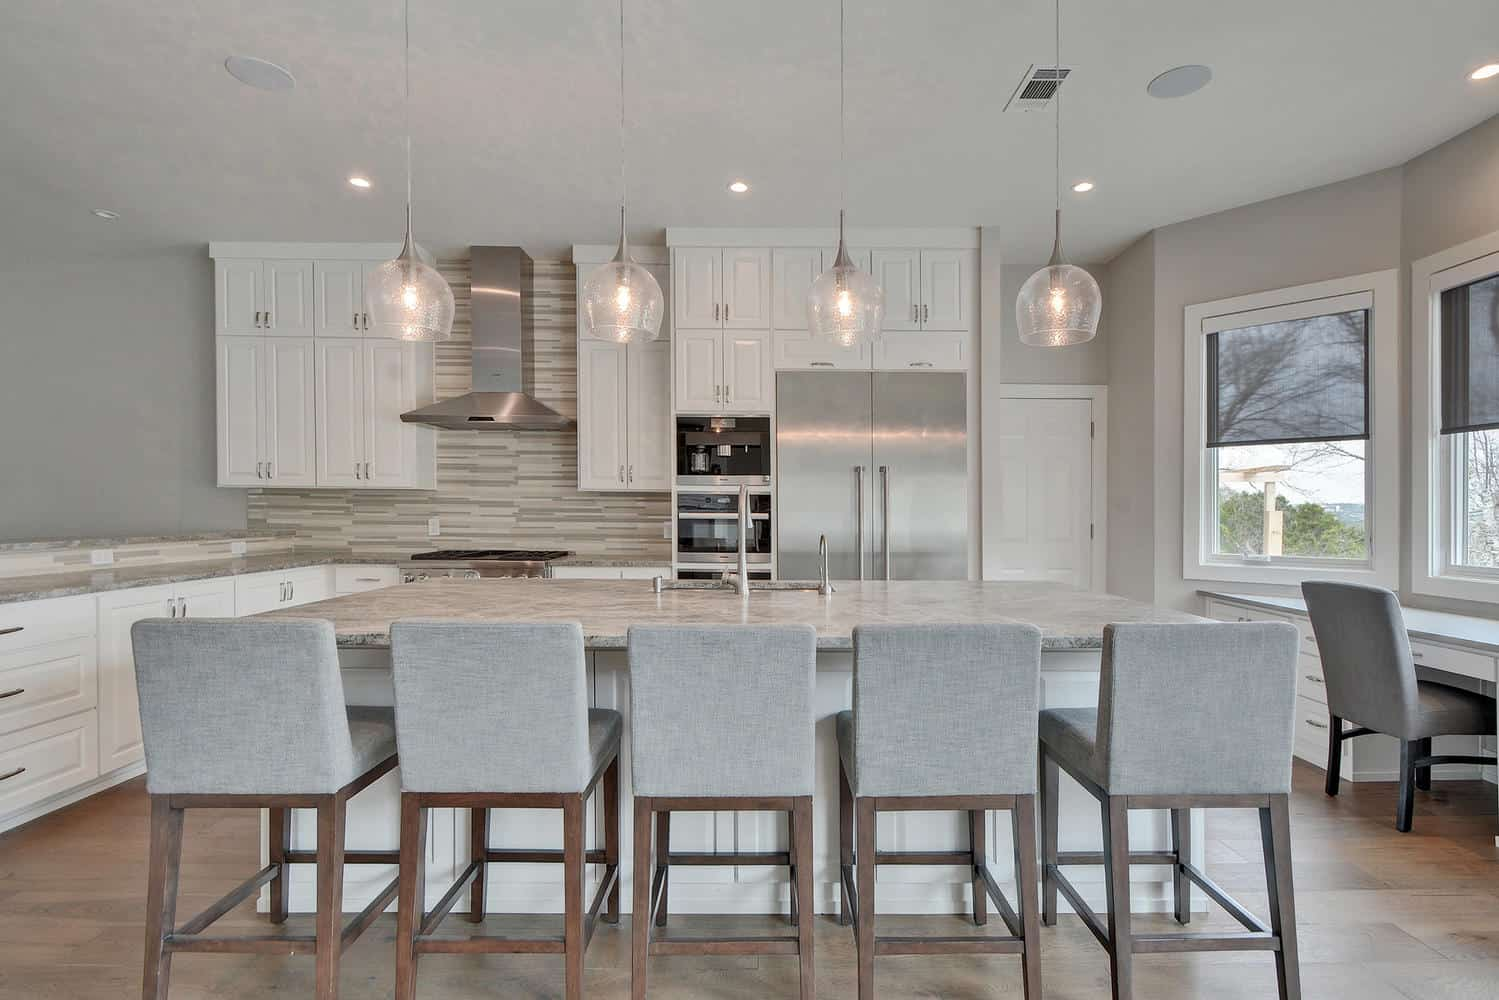 Etch Design Group - open concept kitchen in white and light colors with Thermador fridge.